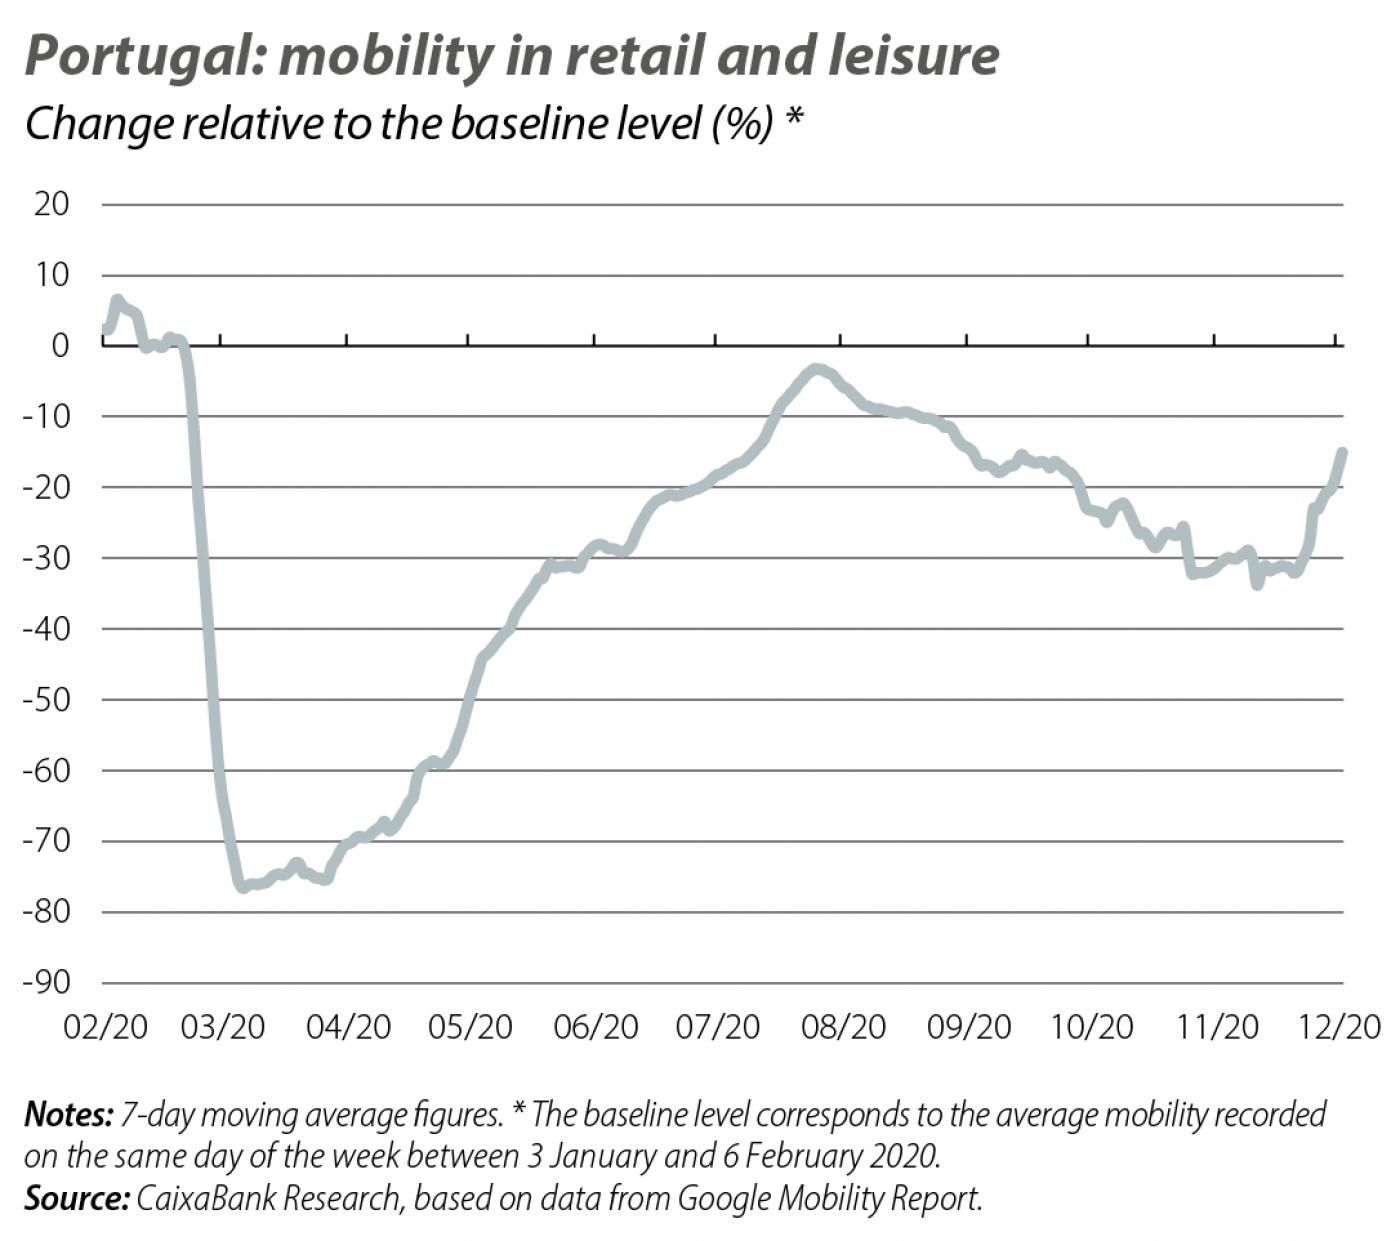 Portugal: mobility in retail and leisure